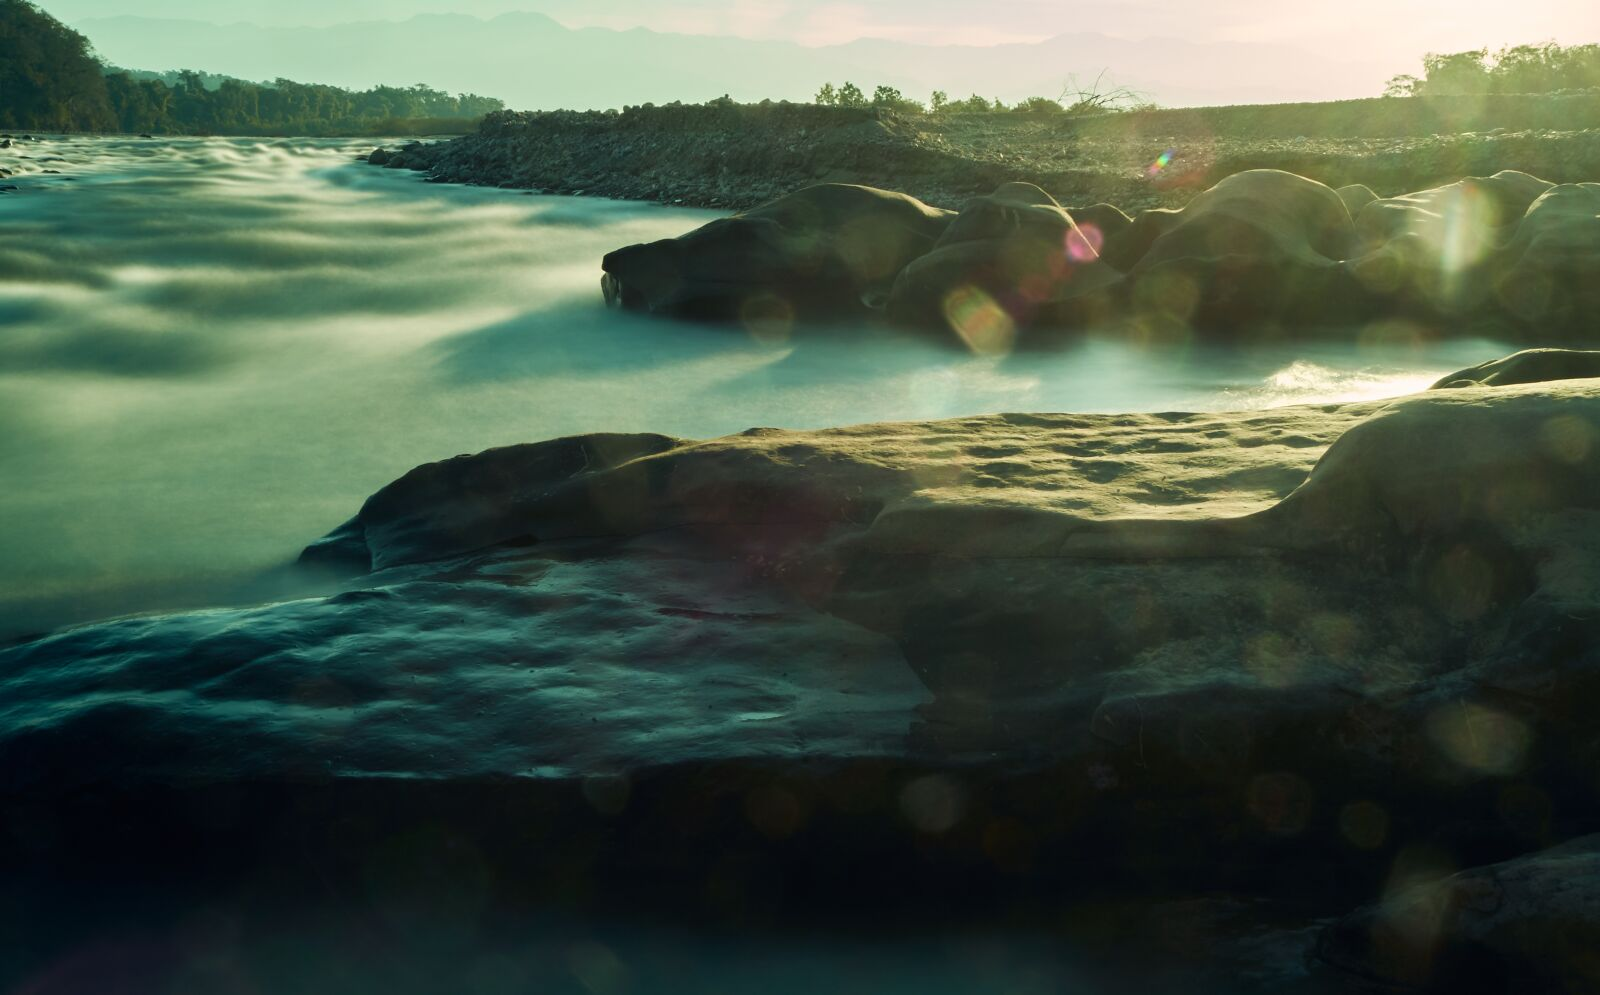 """Sony a6400 sample photo. """"River, rocks, nature"""" photography"""